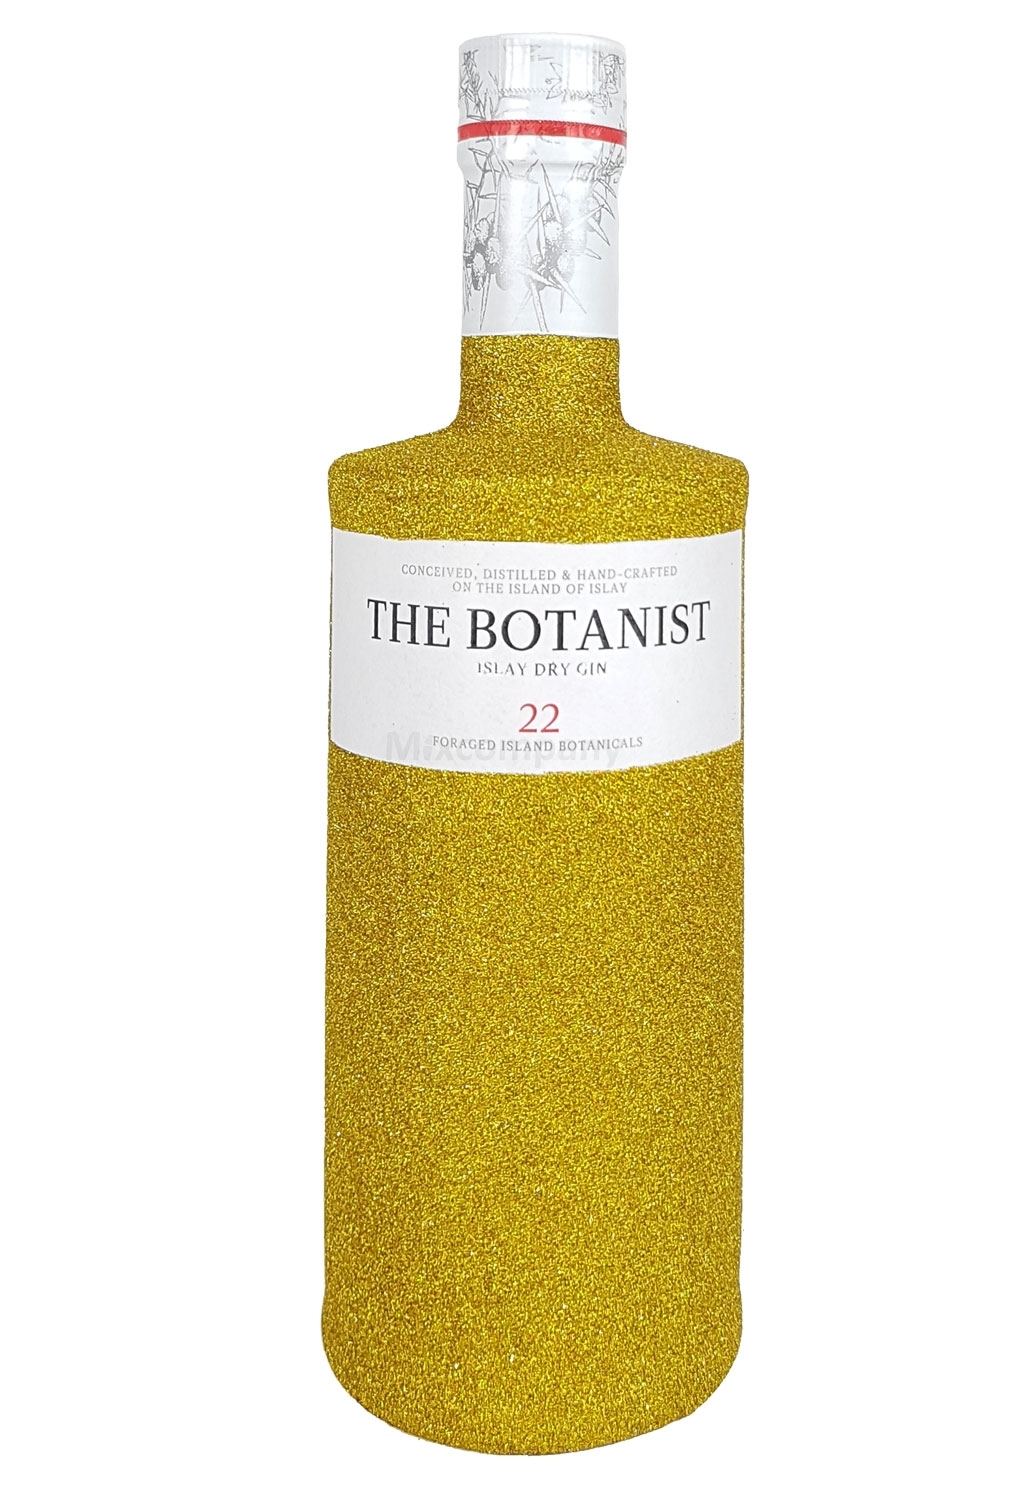 The Botanist Islay Dry Gin 0,7l 700ml (46% Vol) Bling Bling Glitzerflasche in gold -[Enthält Sulfite]